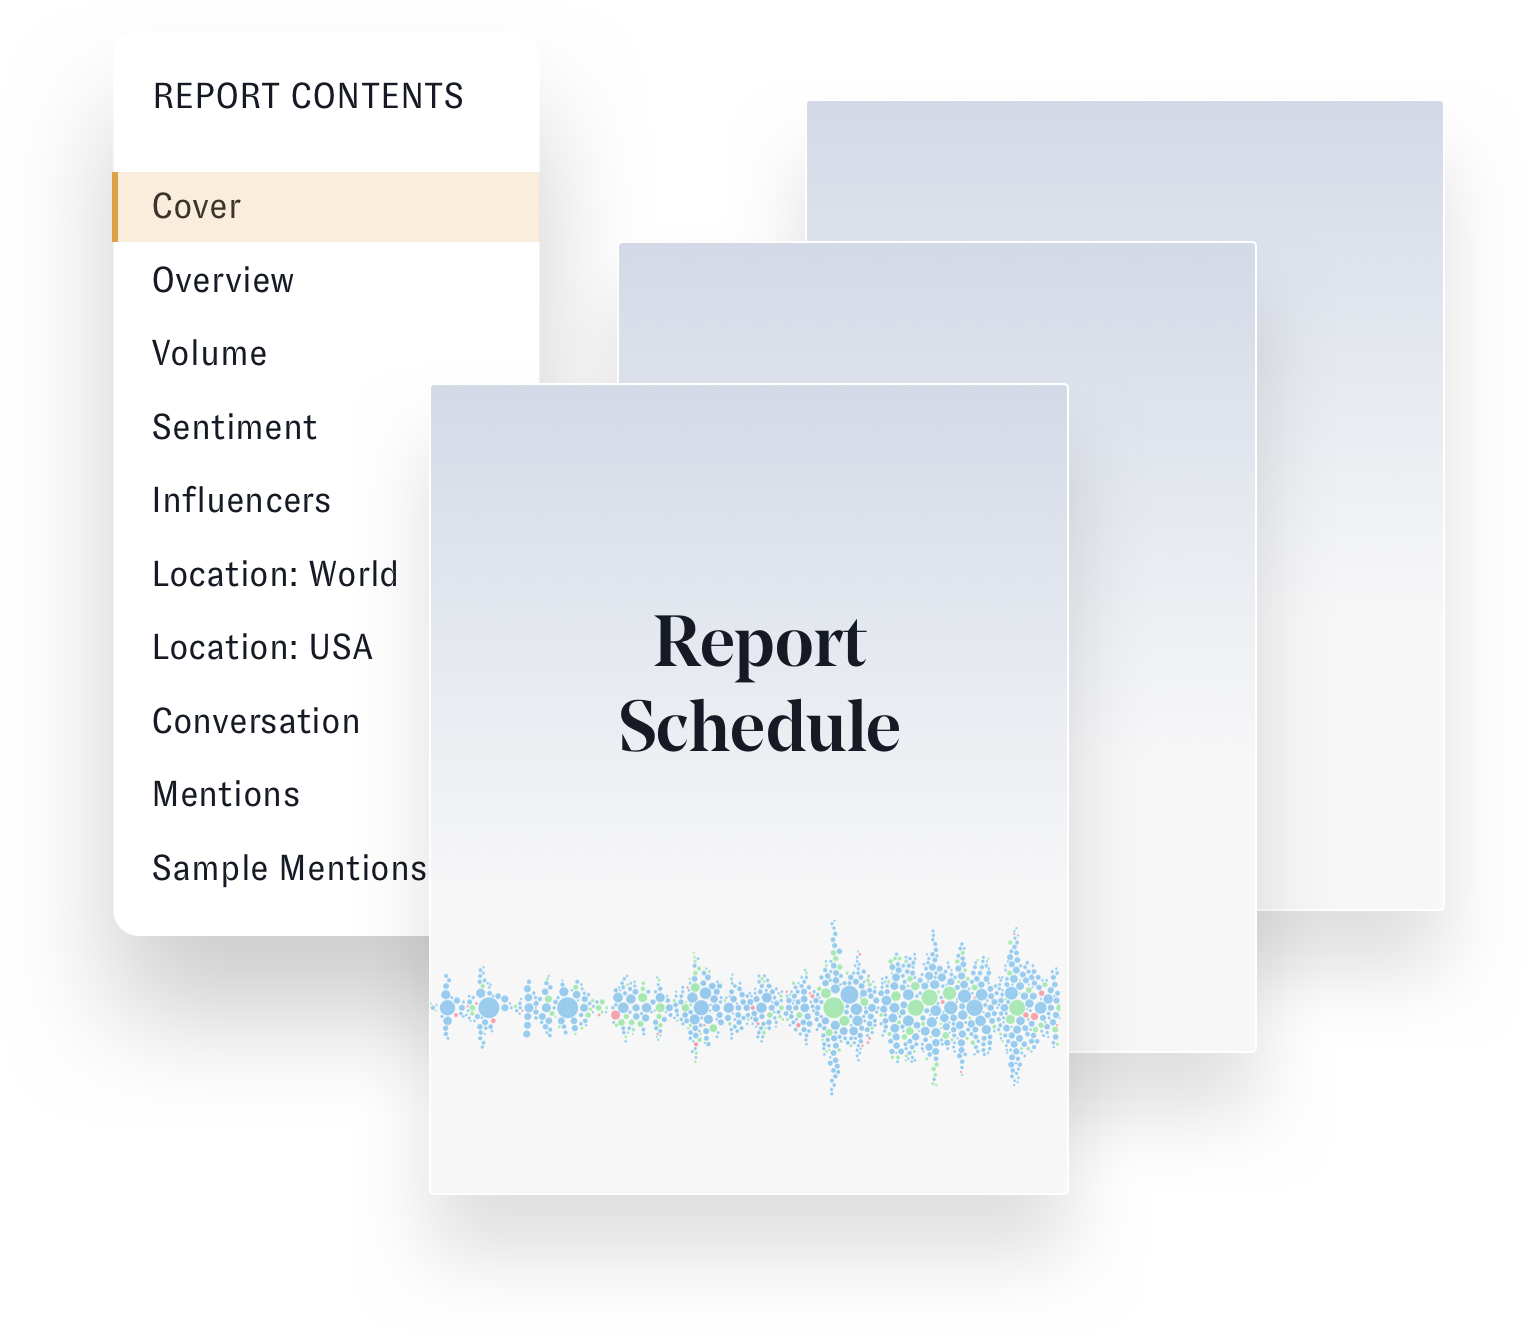 Nuvi Listen can create a report of your audience's social data. The image shows the table of contents for the reports. Sections include cover, overview, volume, sentiment, influencers, Location: world, Location: selected country, conversation, mentions, and sample mentions. The table of contents is listed to the eft in a white, rounded-edge tall rectangle. In the middle and standing lower than the table of contents box is a bluish page titled Report Schedule. This page repeats backward and staggered upwards twices.